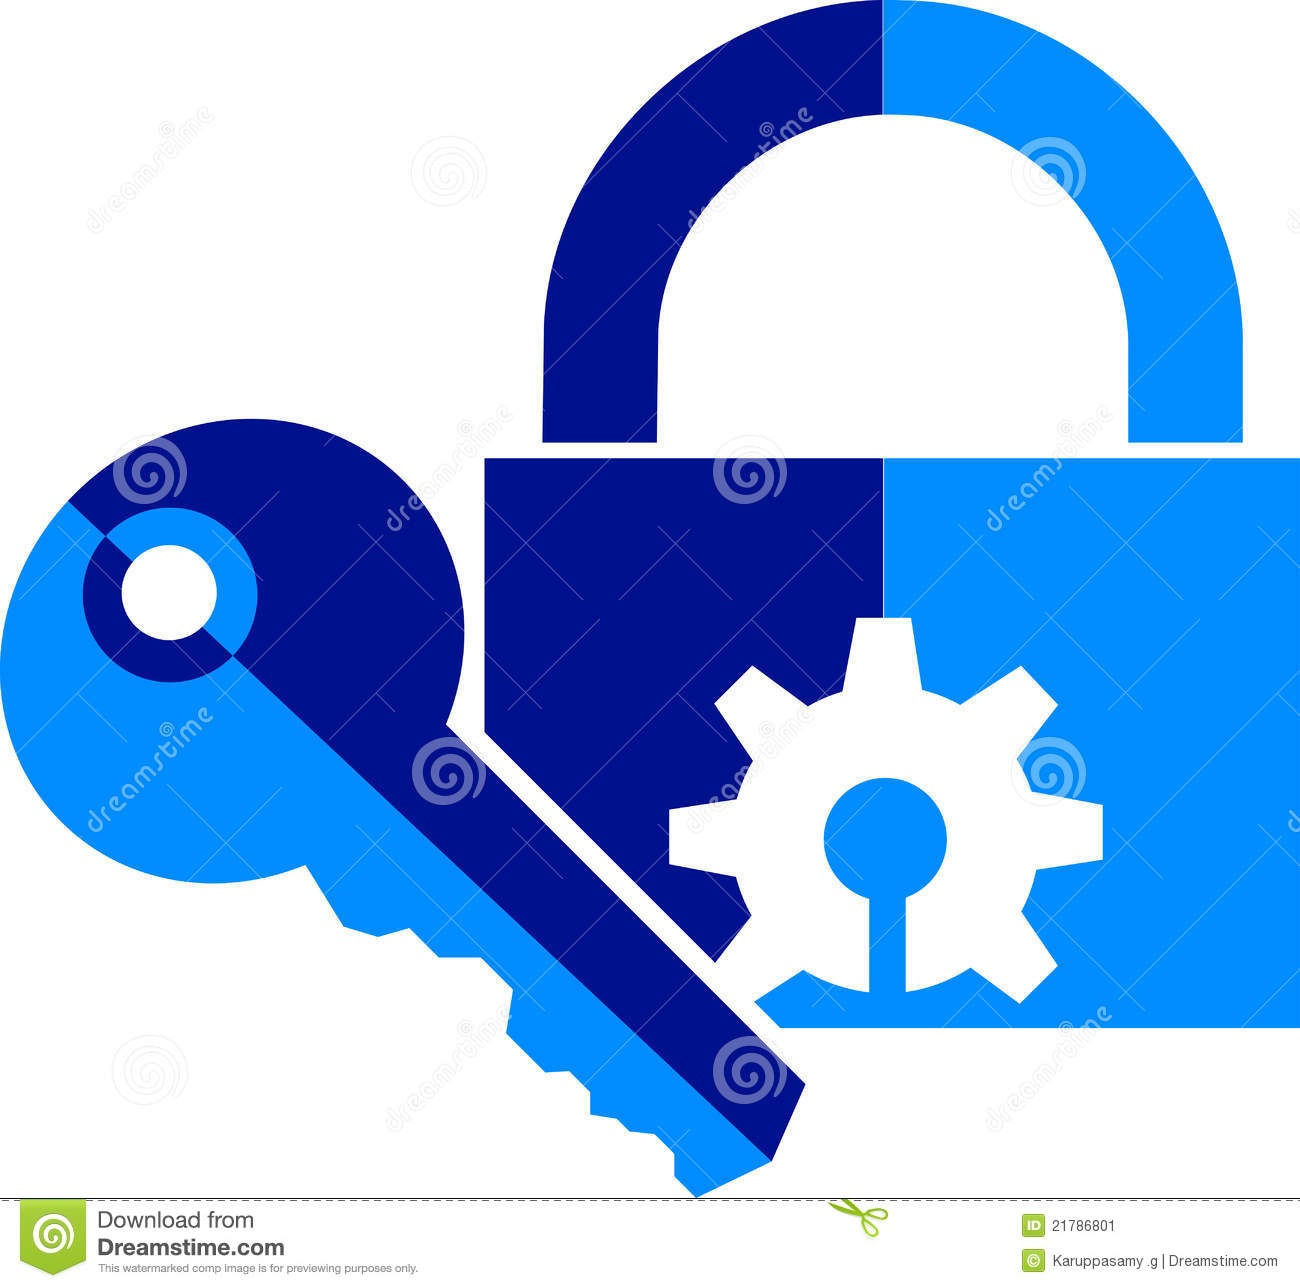 Illustration art of a lock and key logo with isolated background.